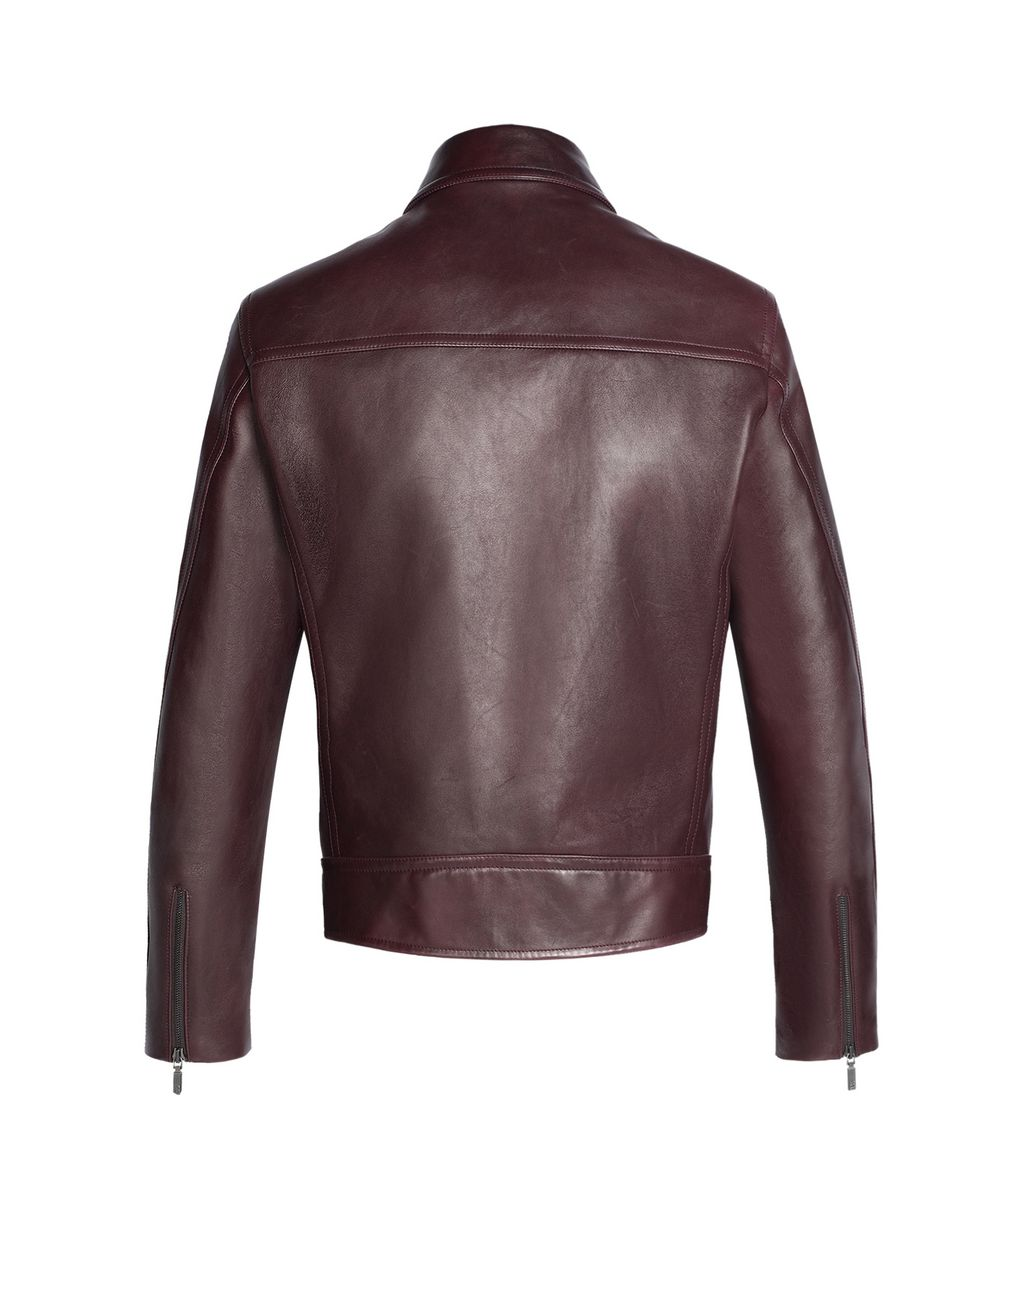 BRIONI Burgundy Leather Biker Jacket Outerwear Man r